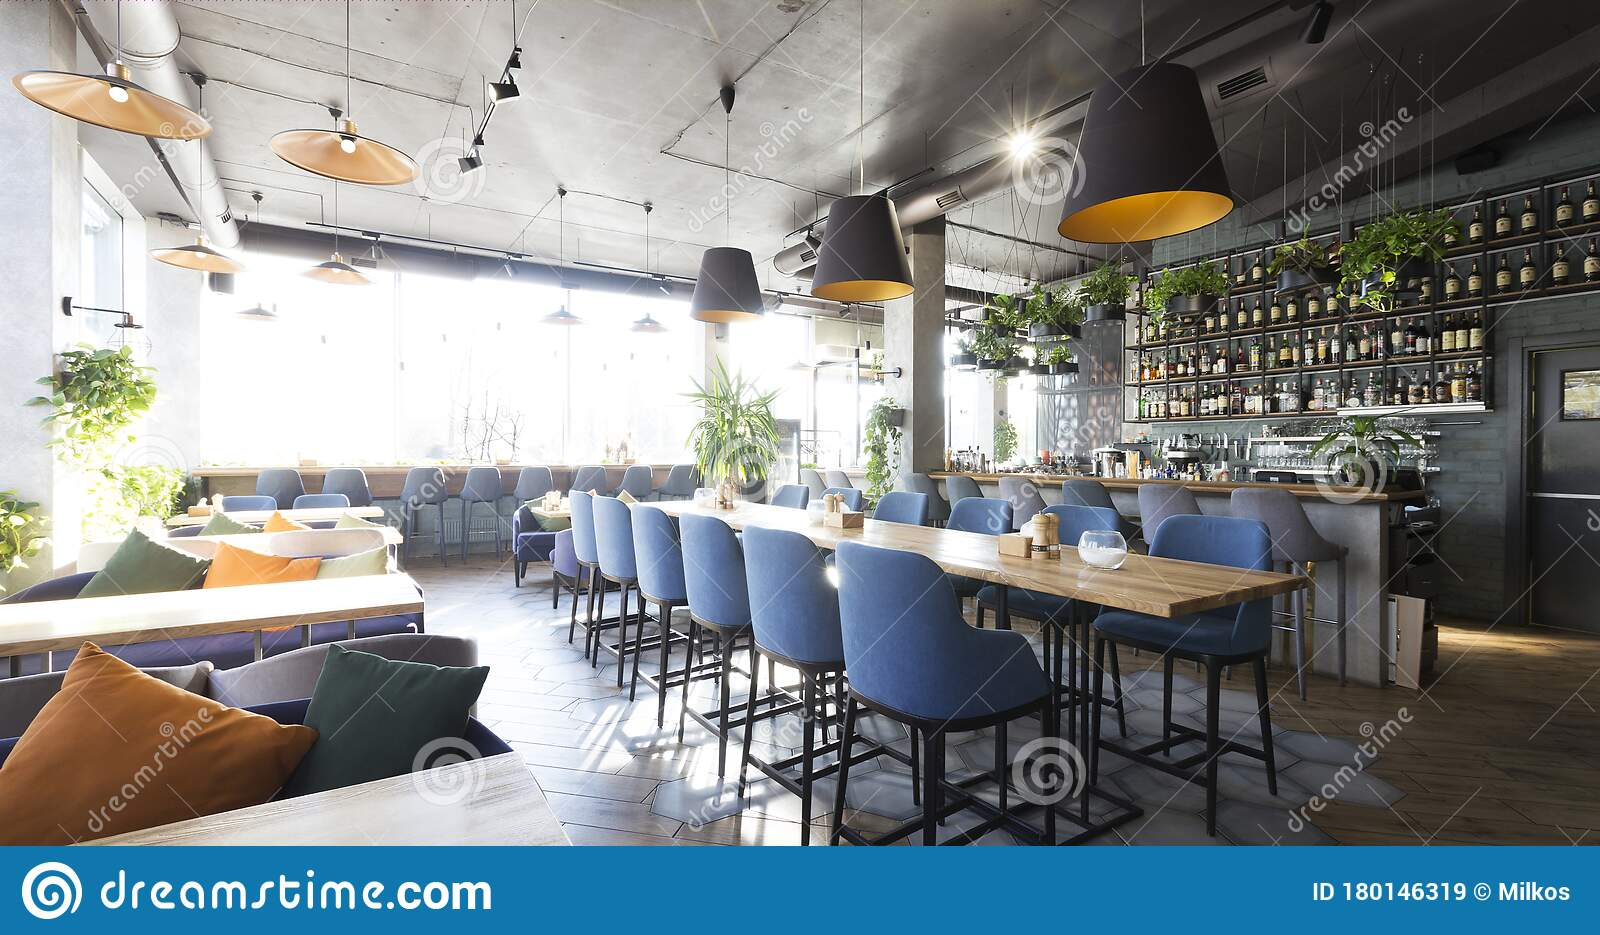 36 754 Bar Interior Modern Photos Free Royalty Free Stock Photos From Dreamstime